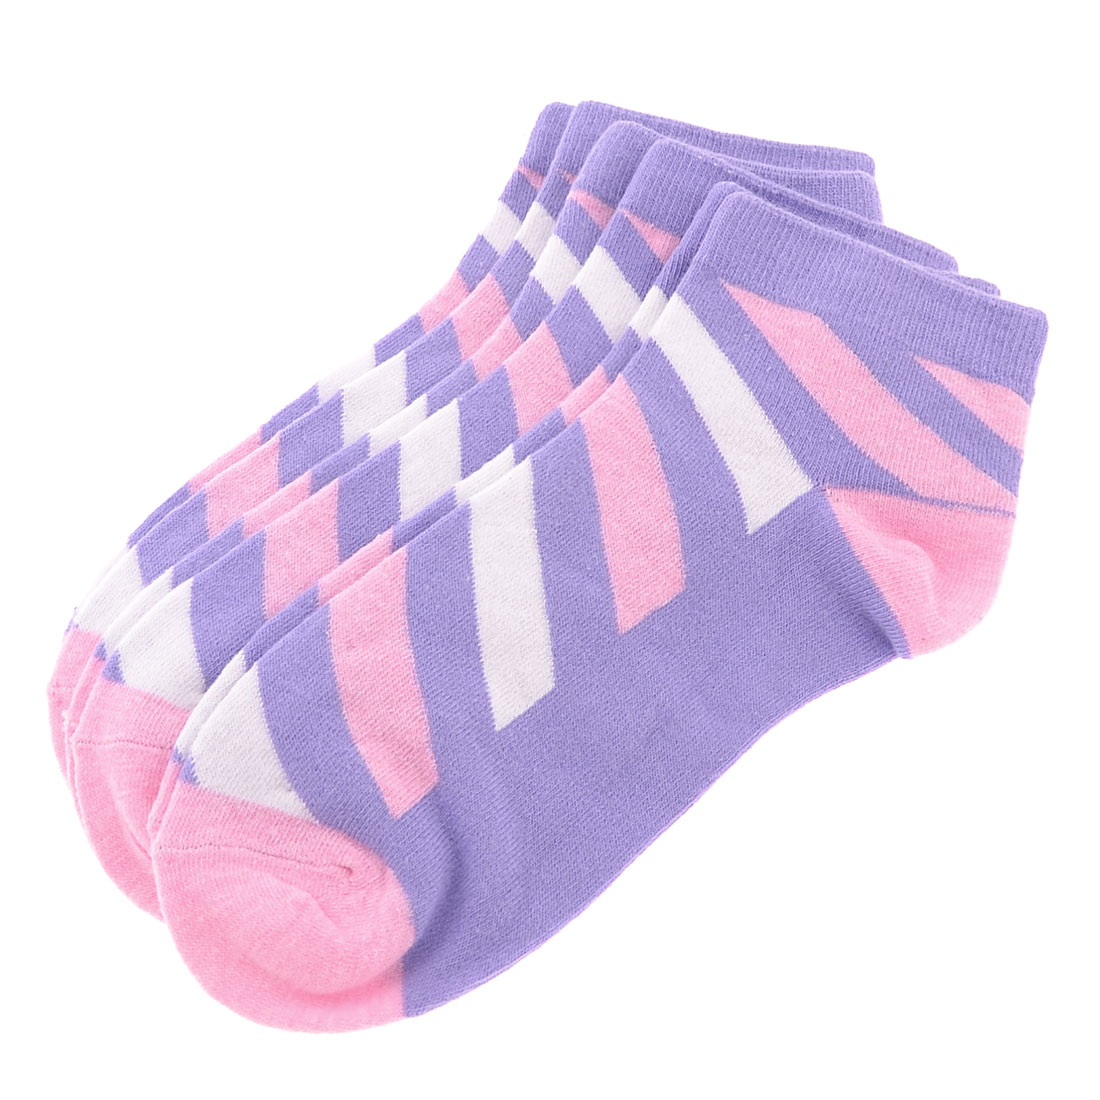 3 Pairs Purple Stripes Pattern Elastic Casual Ankle Socks for Woman